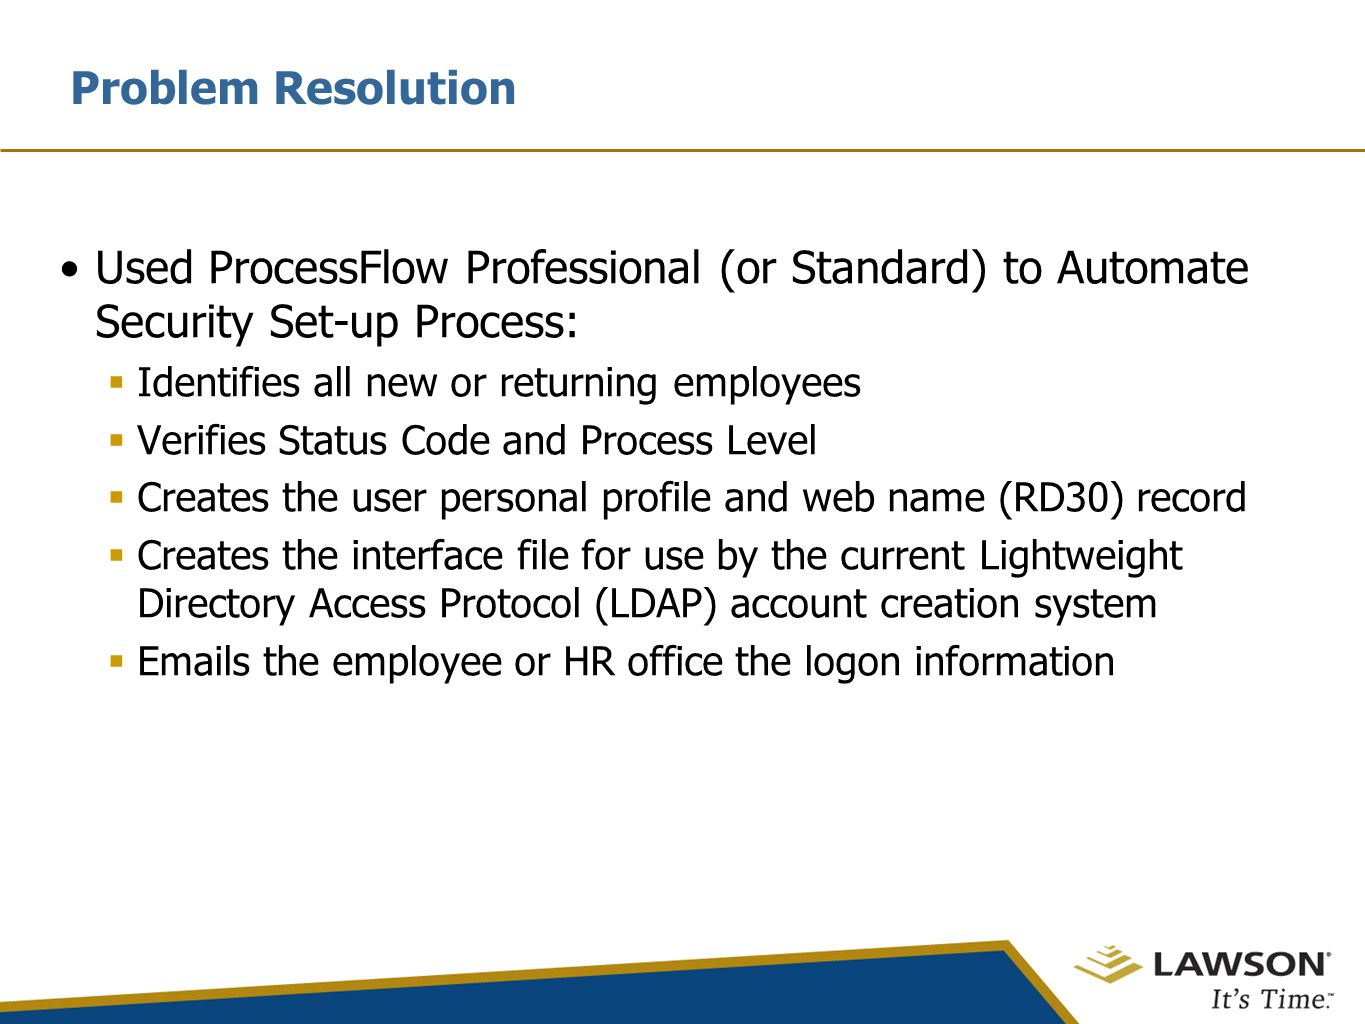 Problem Resolution Used ProcessFlow Professional (or Standard) to Automate Security Set-up Process:  Identifies all new or returning employees  Verifies Status Code and Process Level  Creates the user personal profile and web name (RD30) record  Creates the interface file for use by the current Lightweight Directory Access Protocol (LDAP) account creation system  Emails the employee or HR office the logon information